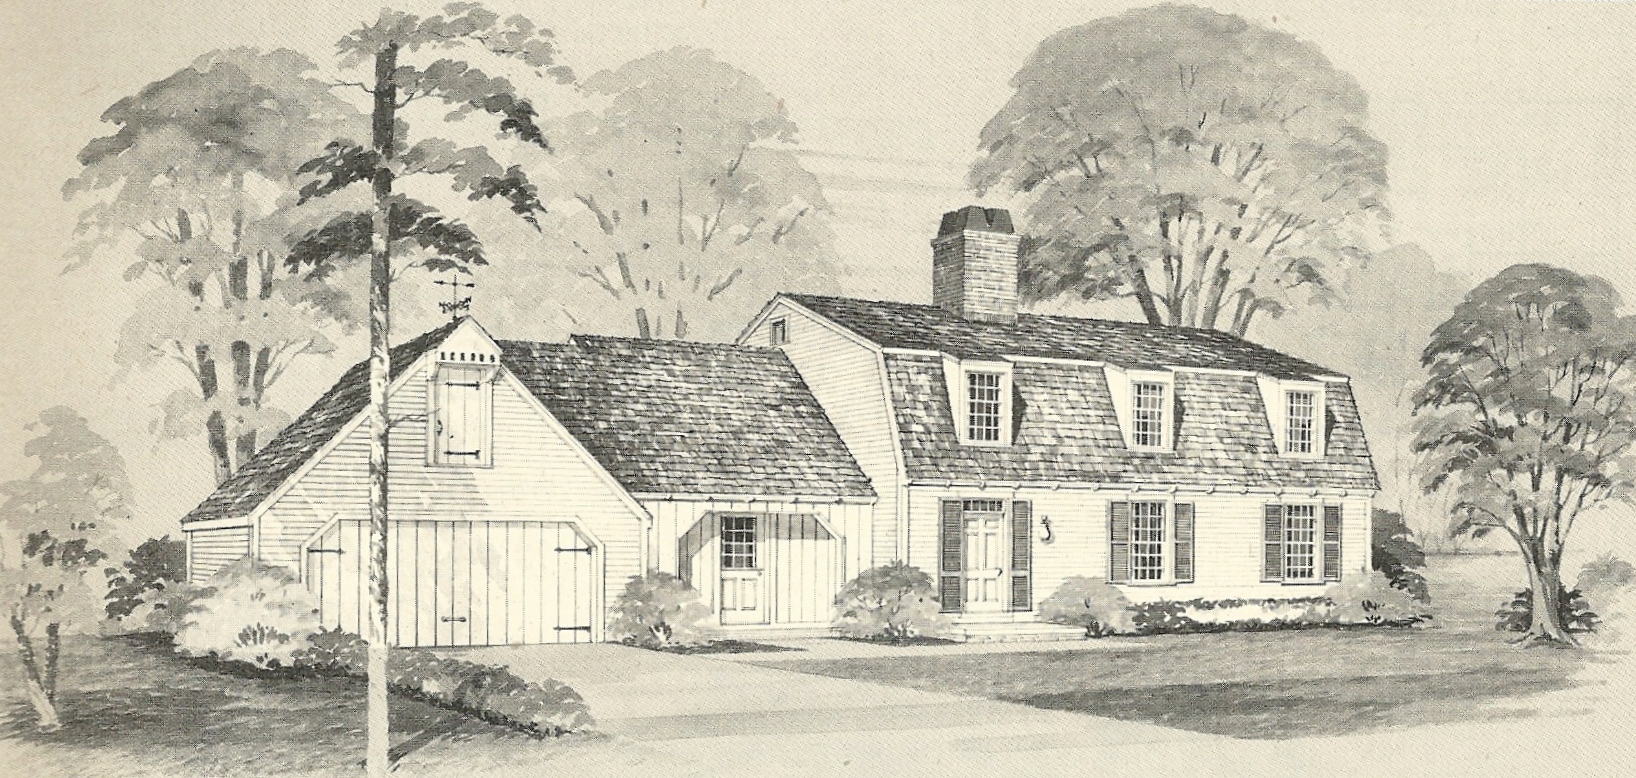 Vintage house plans 2131 antique alter ego for New england house designs